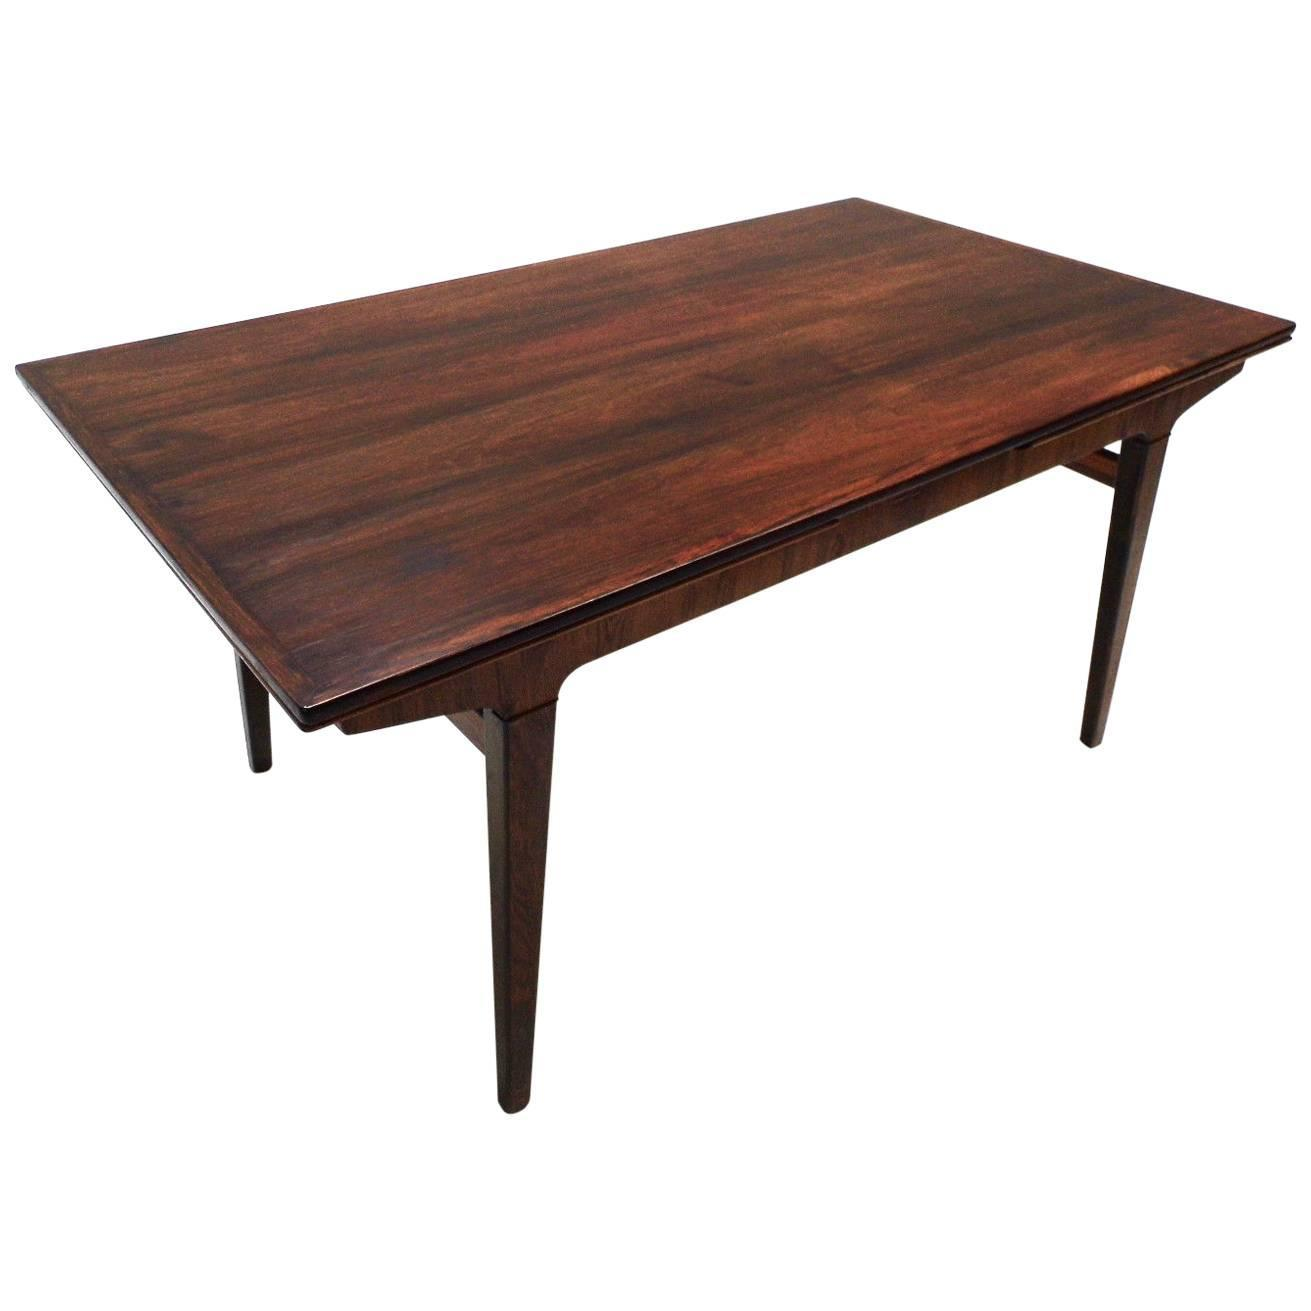 Danish johannes andersen rosewood dining table mid century 1960s at